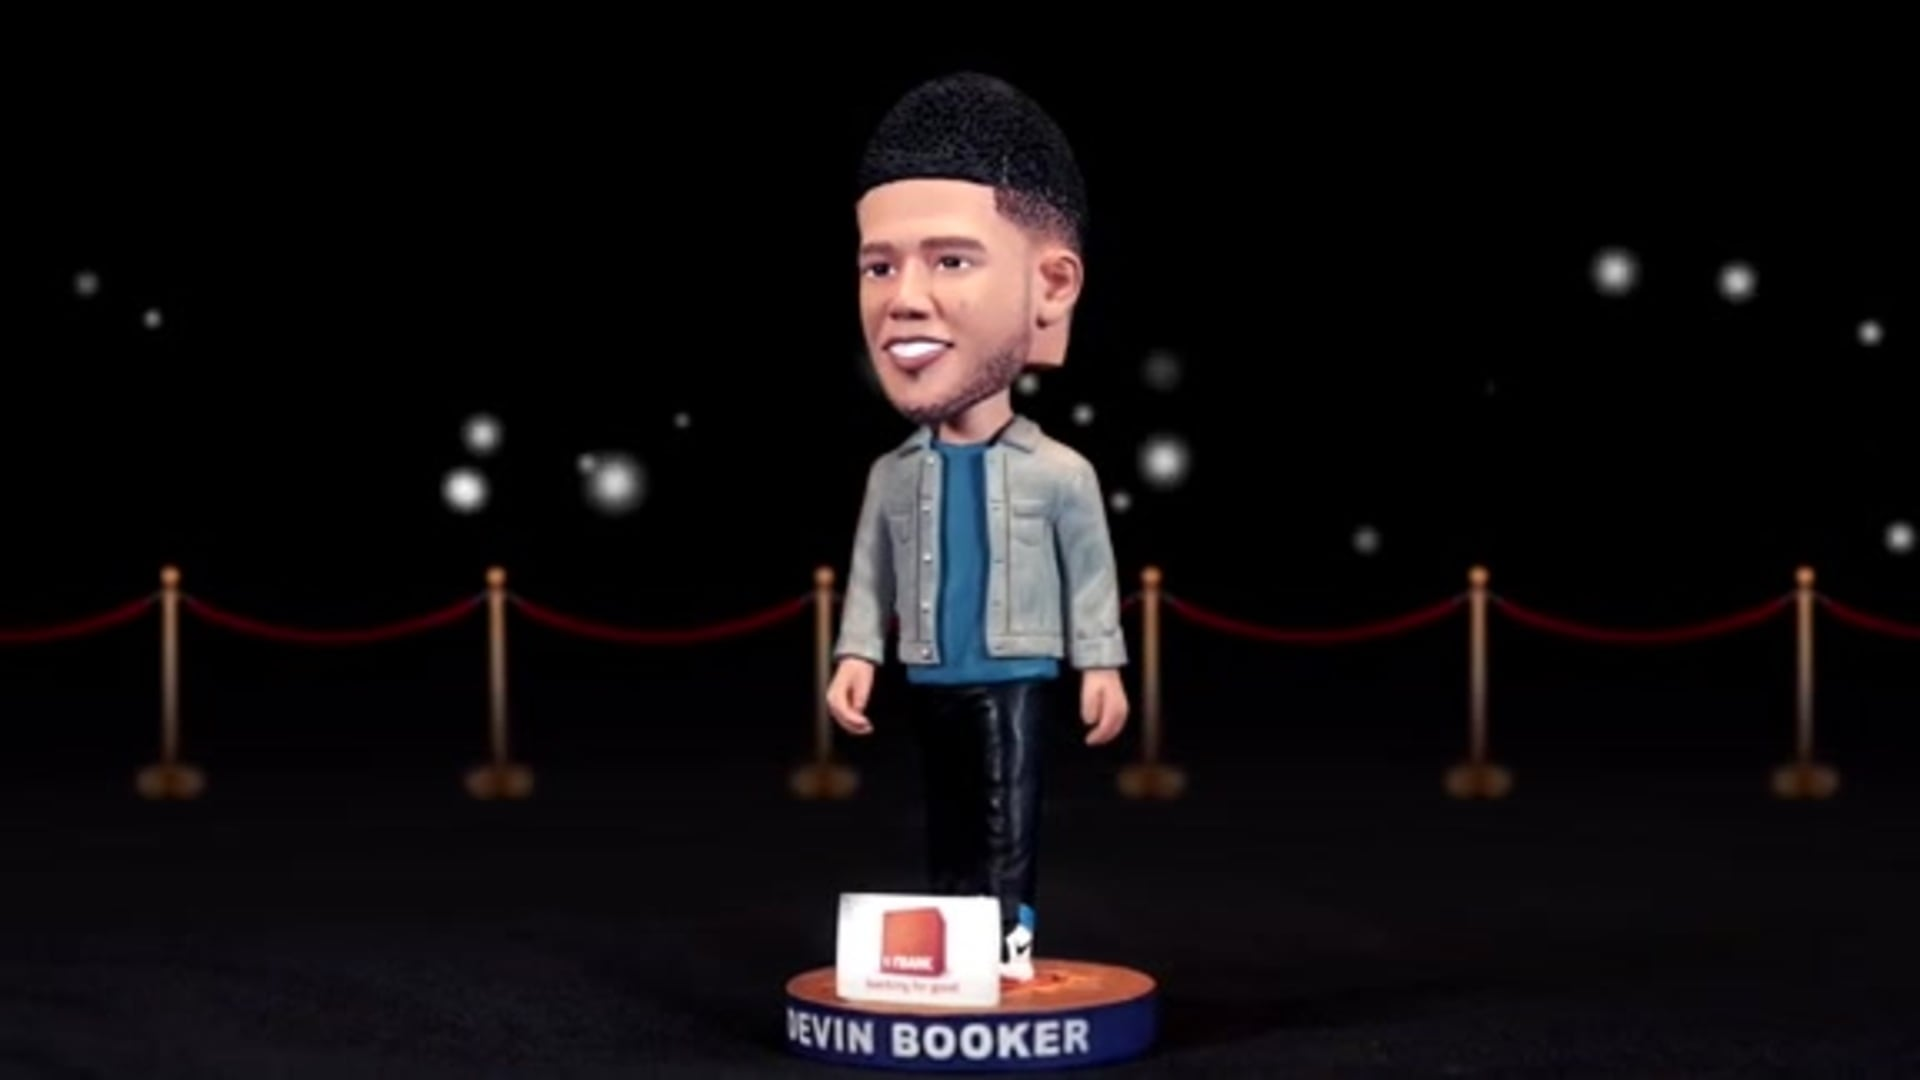 Devin Booker Bobblehead Courtesy of First Bank